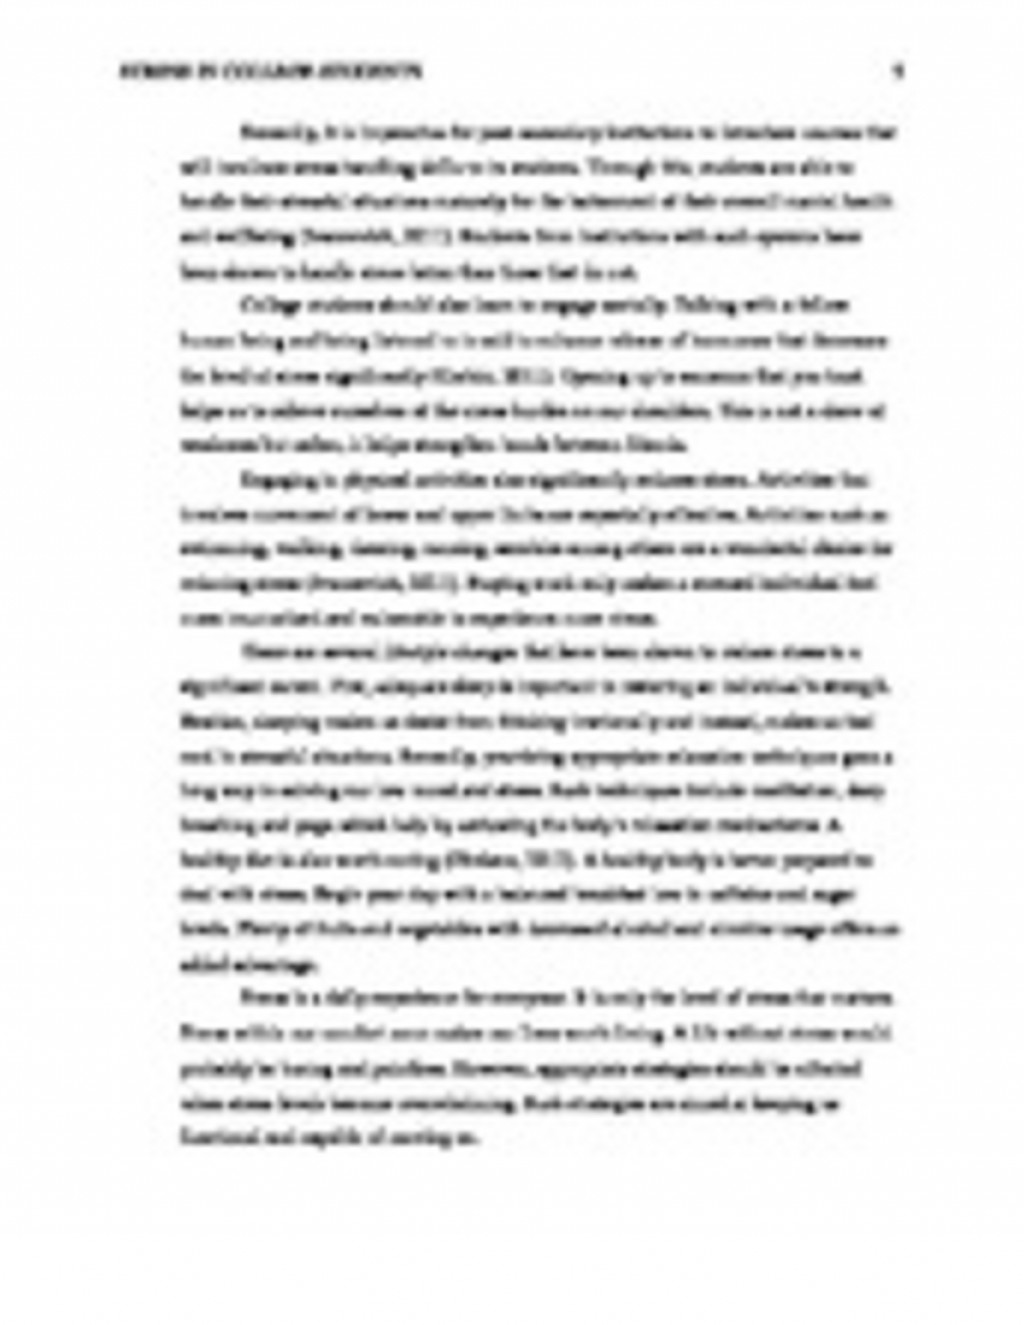 013 College Stress Essay Ways To Reduce Application Financial In Students Management Complete  Copy Academic Causes Of Among On Unforgettable And Health Exam HindiLarge